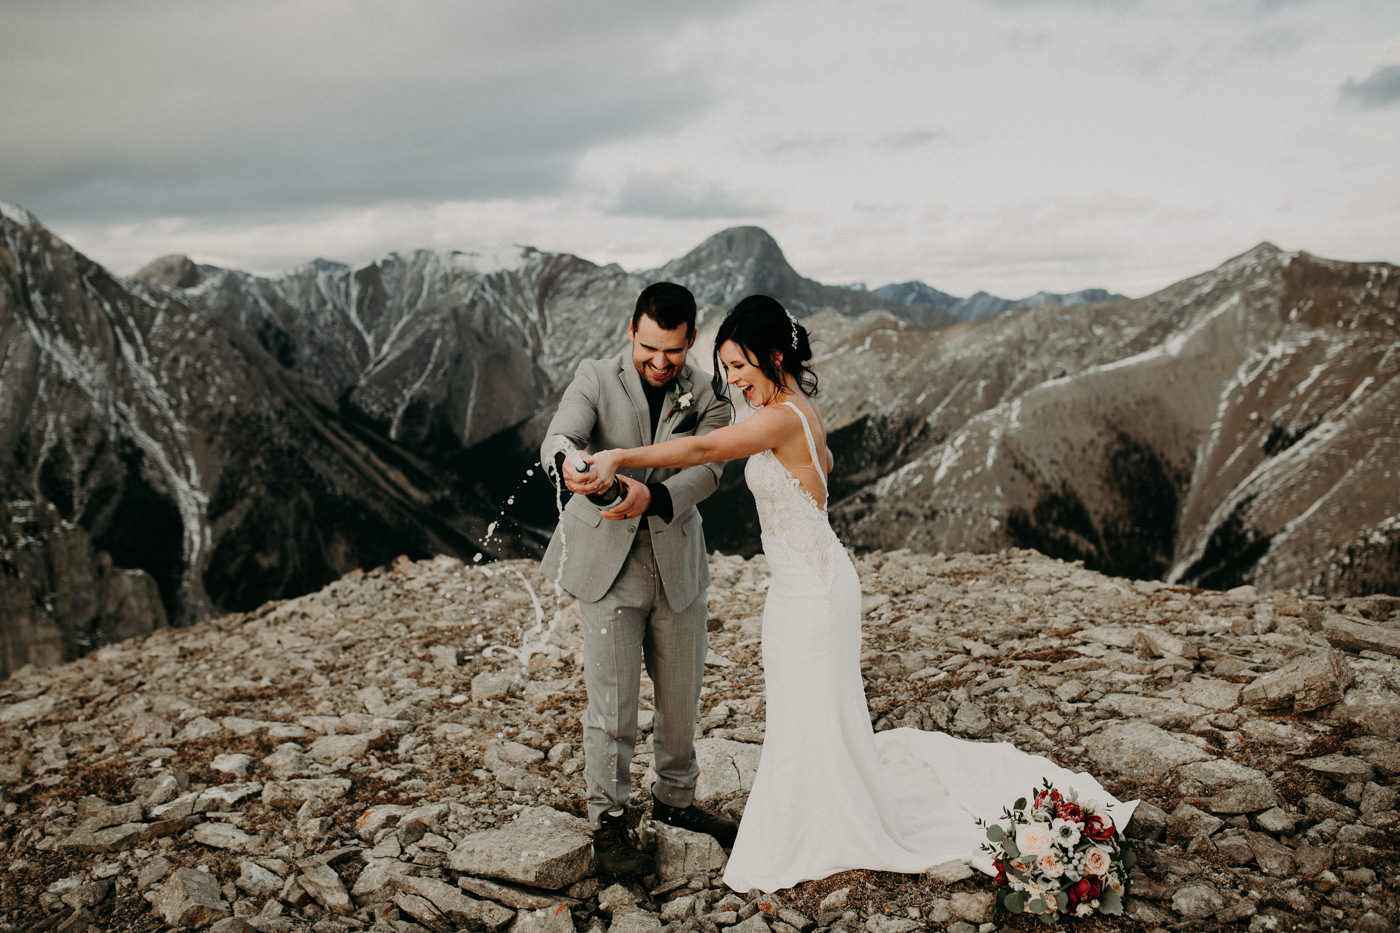 Weddings - I am currently booking 2019 & 2020 weddings and elopements!Local weddings start at $2750 CAD plus GST. (Inquire for travel & elopement prices).Please contact me here to see if we would be a good fit!